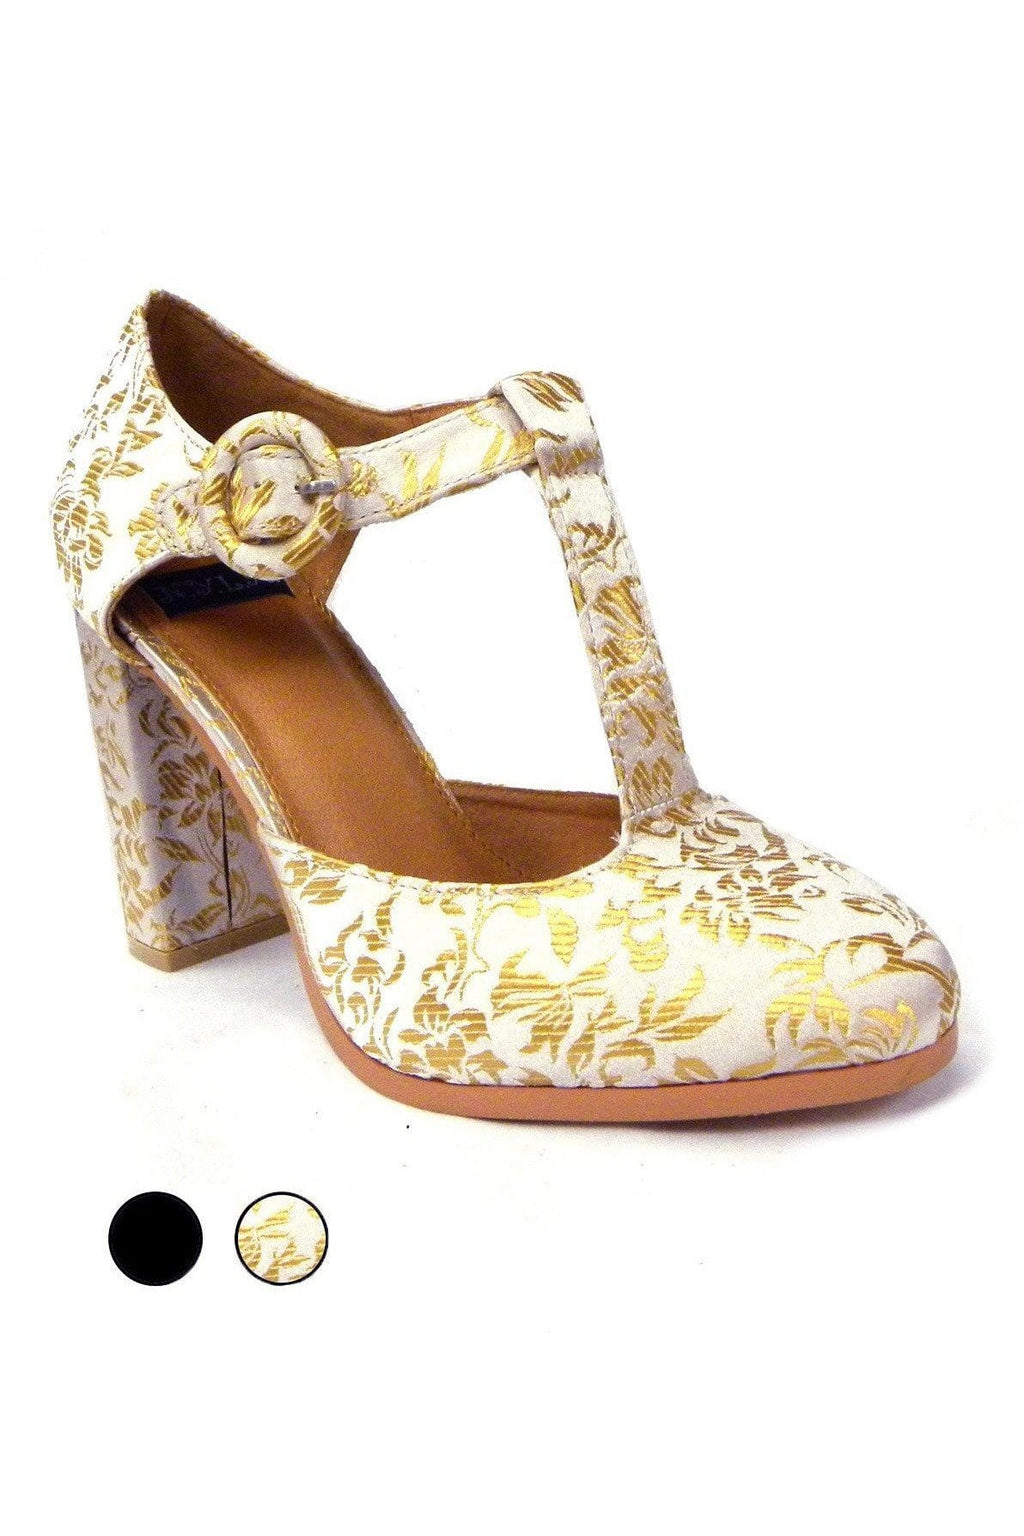 T-Strap Heels in Gold Brocade or Black Leather